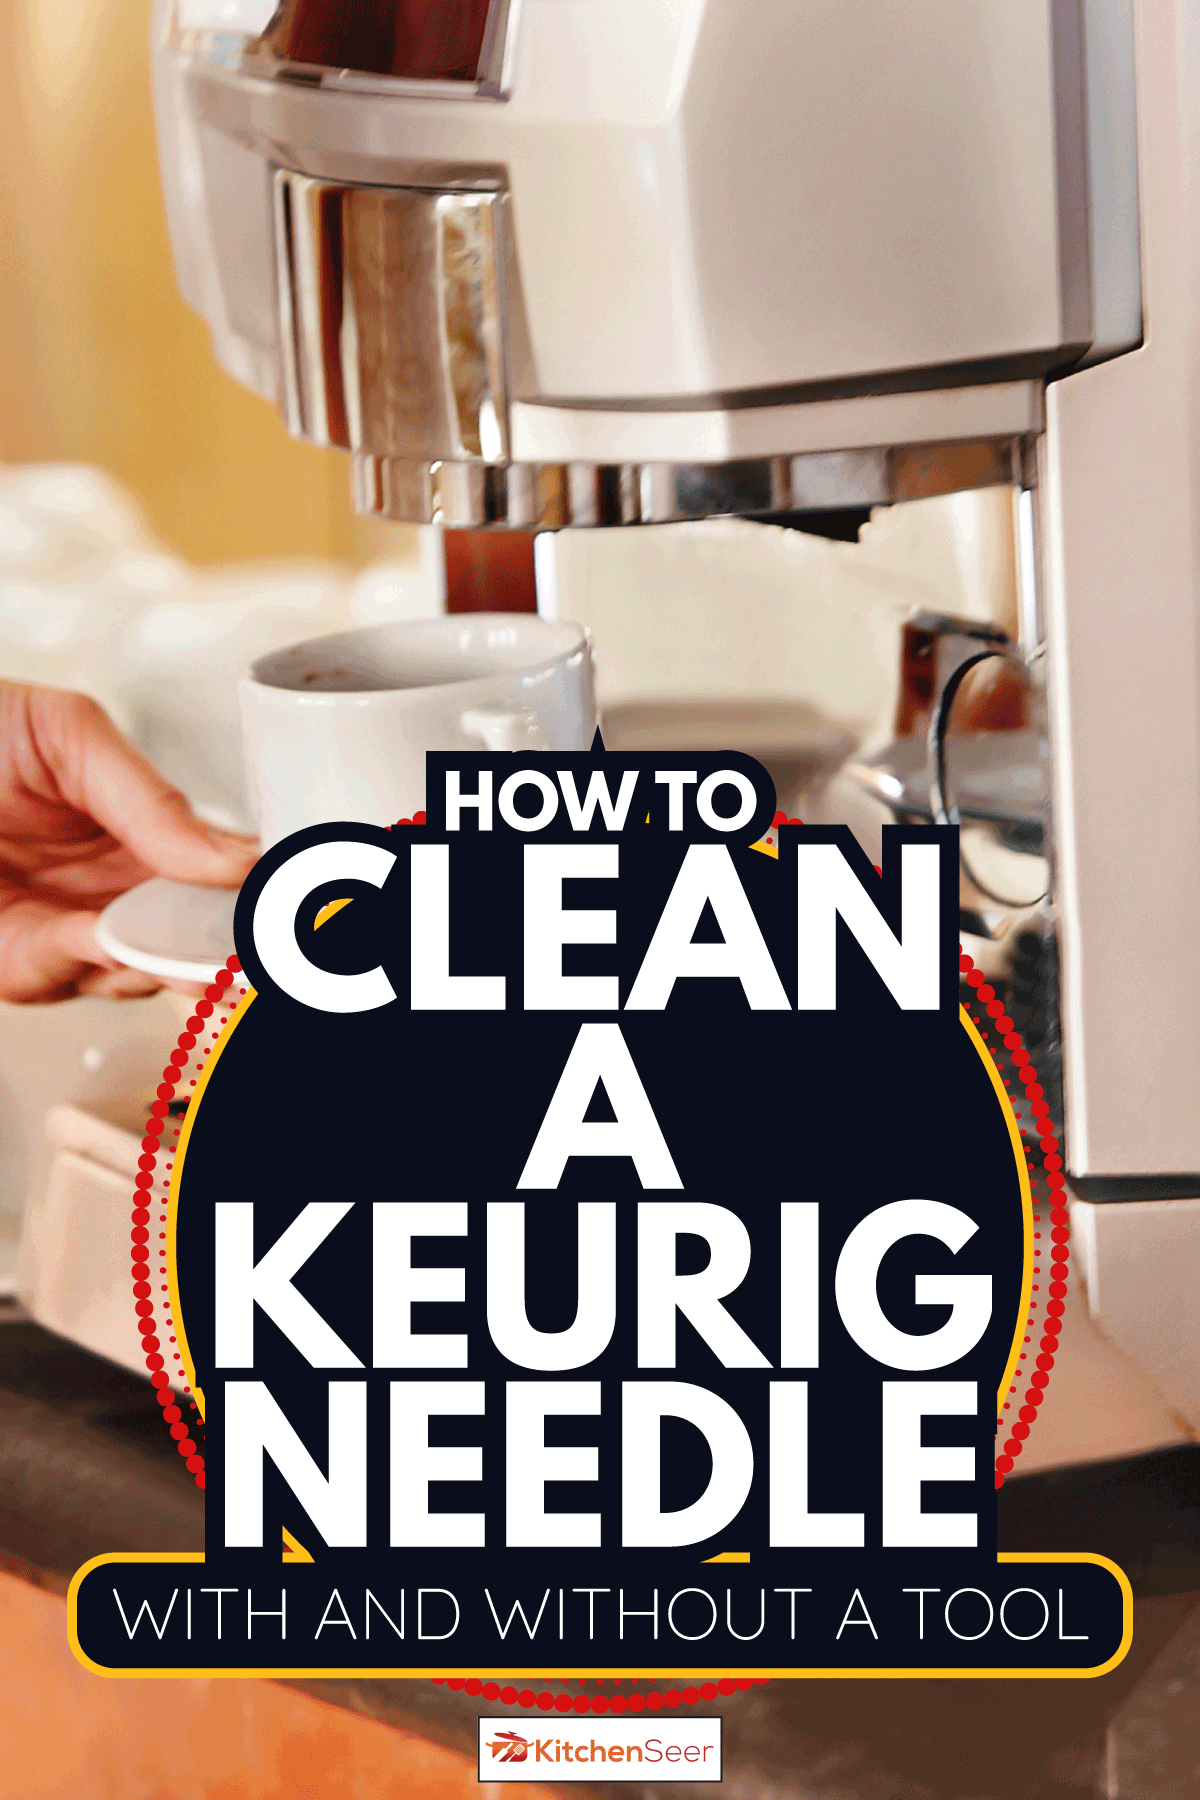 Coffee machine with cup of coffee. How To Clean A Keurig Needle [With And Without A Tool]